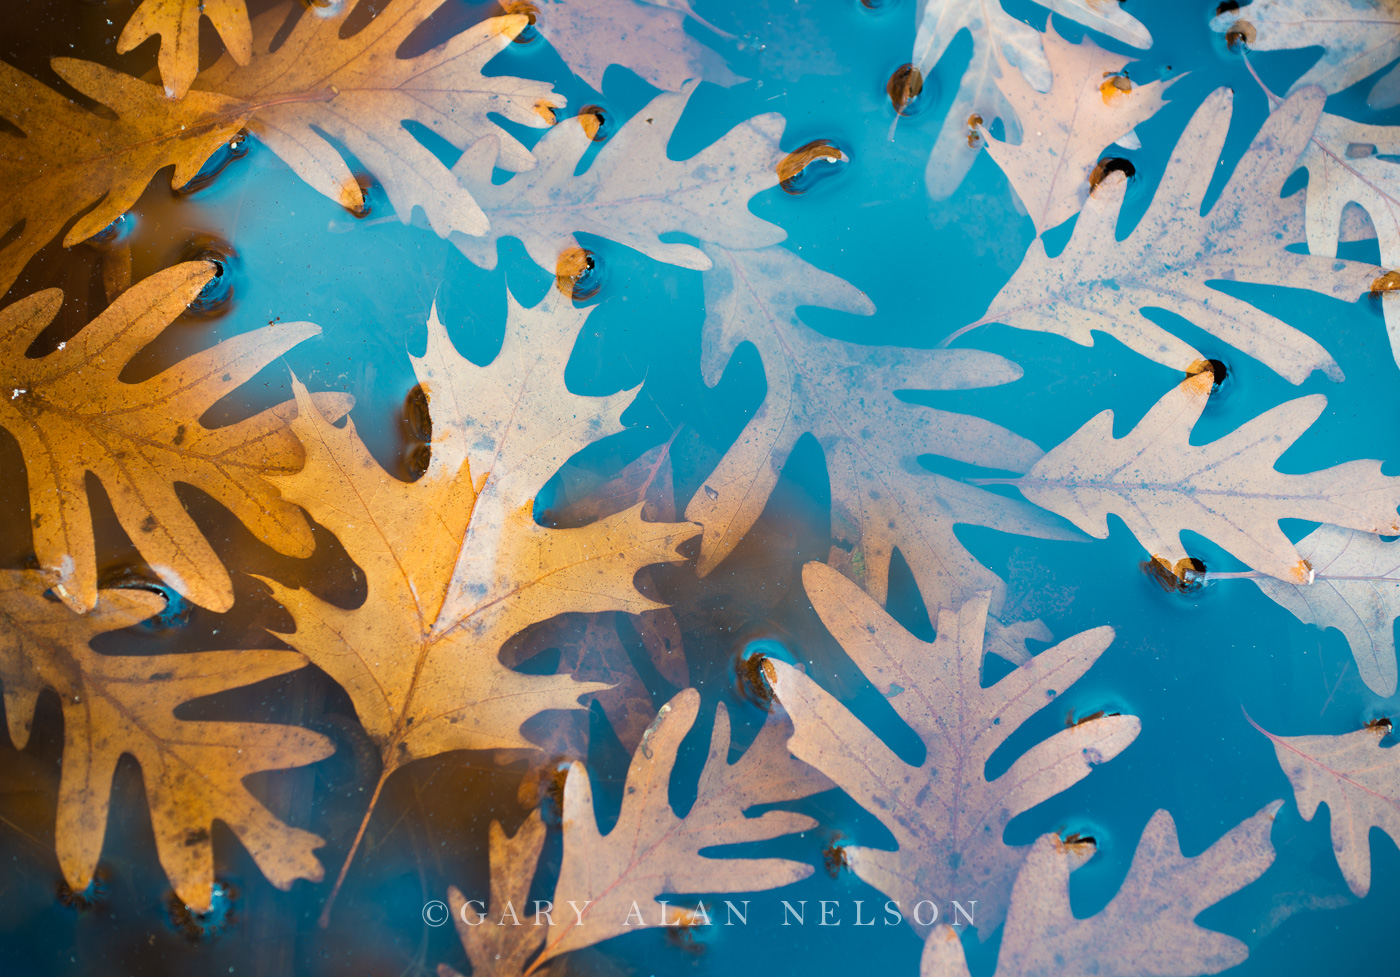 Allemansratt,leaf,minnesota,oak,oak leaves,reflections, photo